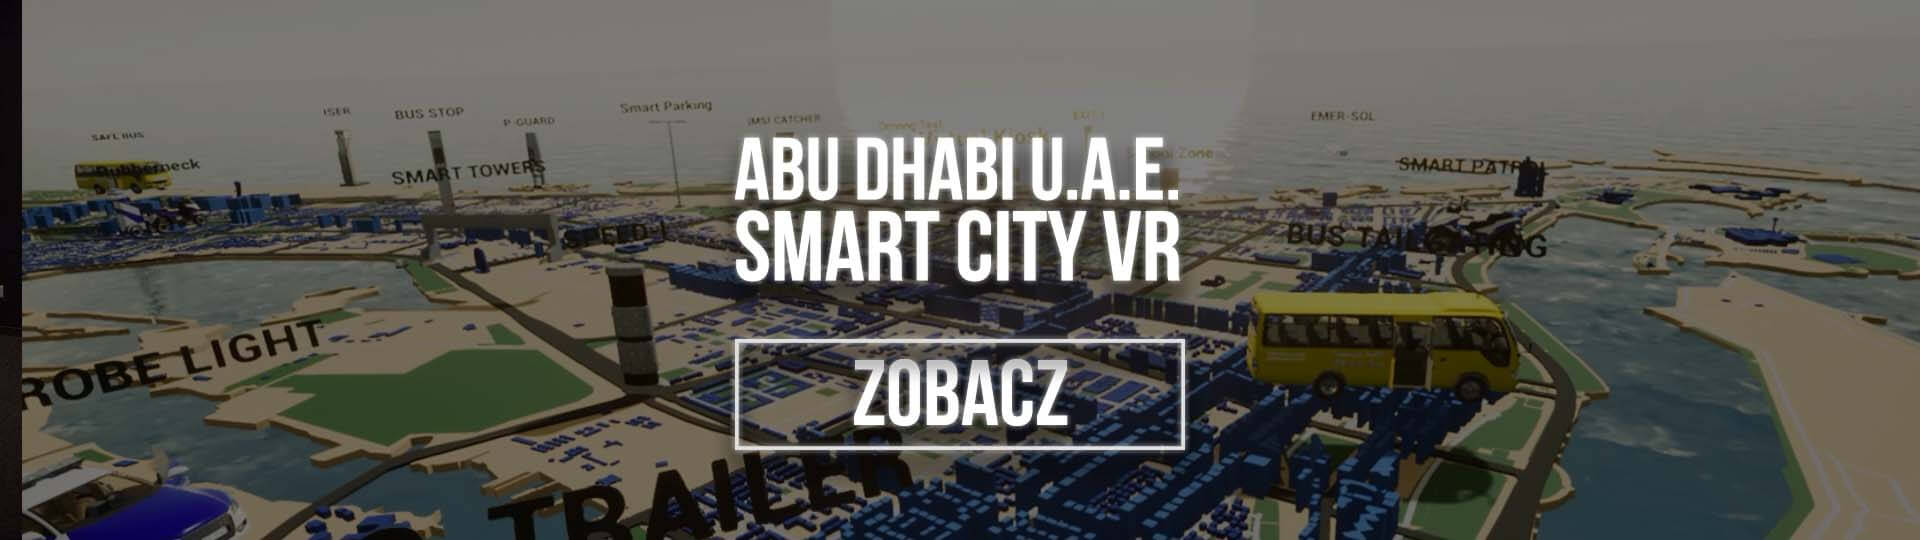 abu dhabi virtual reality marketing app